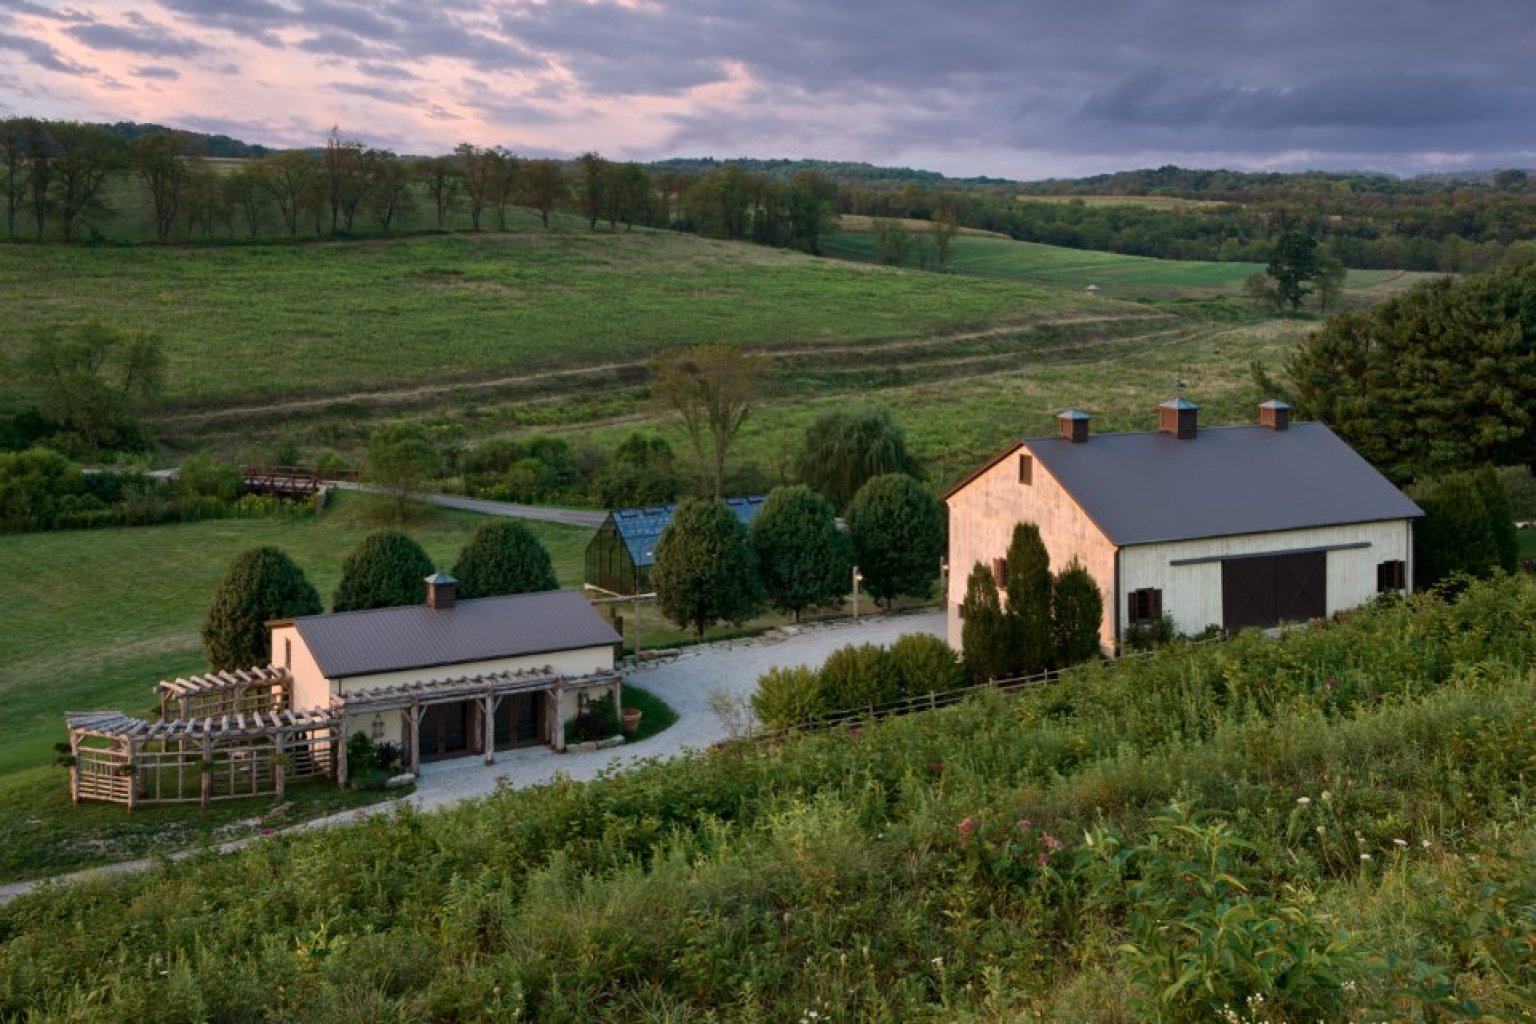 39 the farm 39 featured on bravo 39 s 39 property envy 39 will for Ranch and rural living